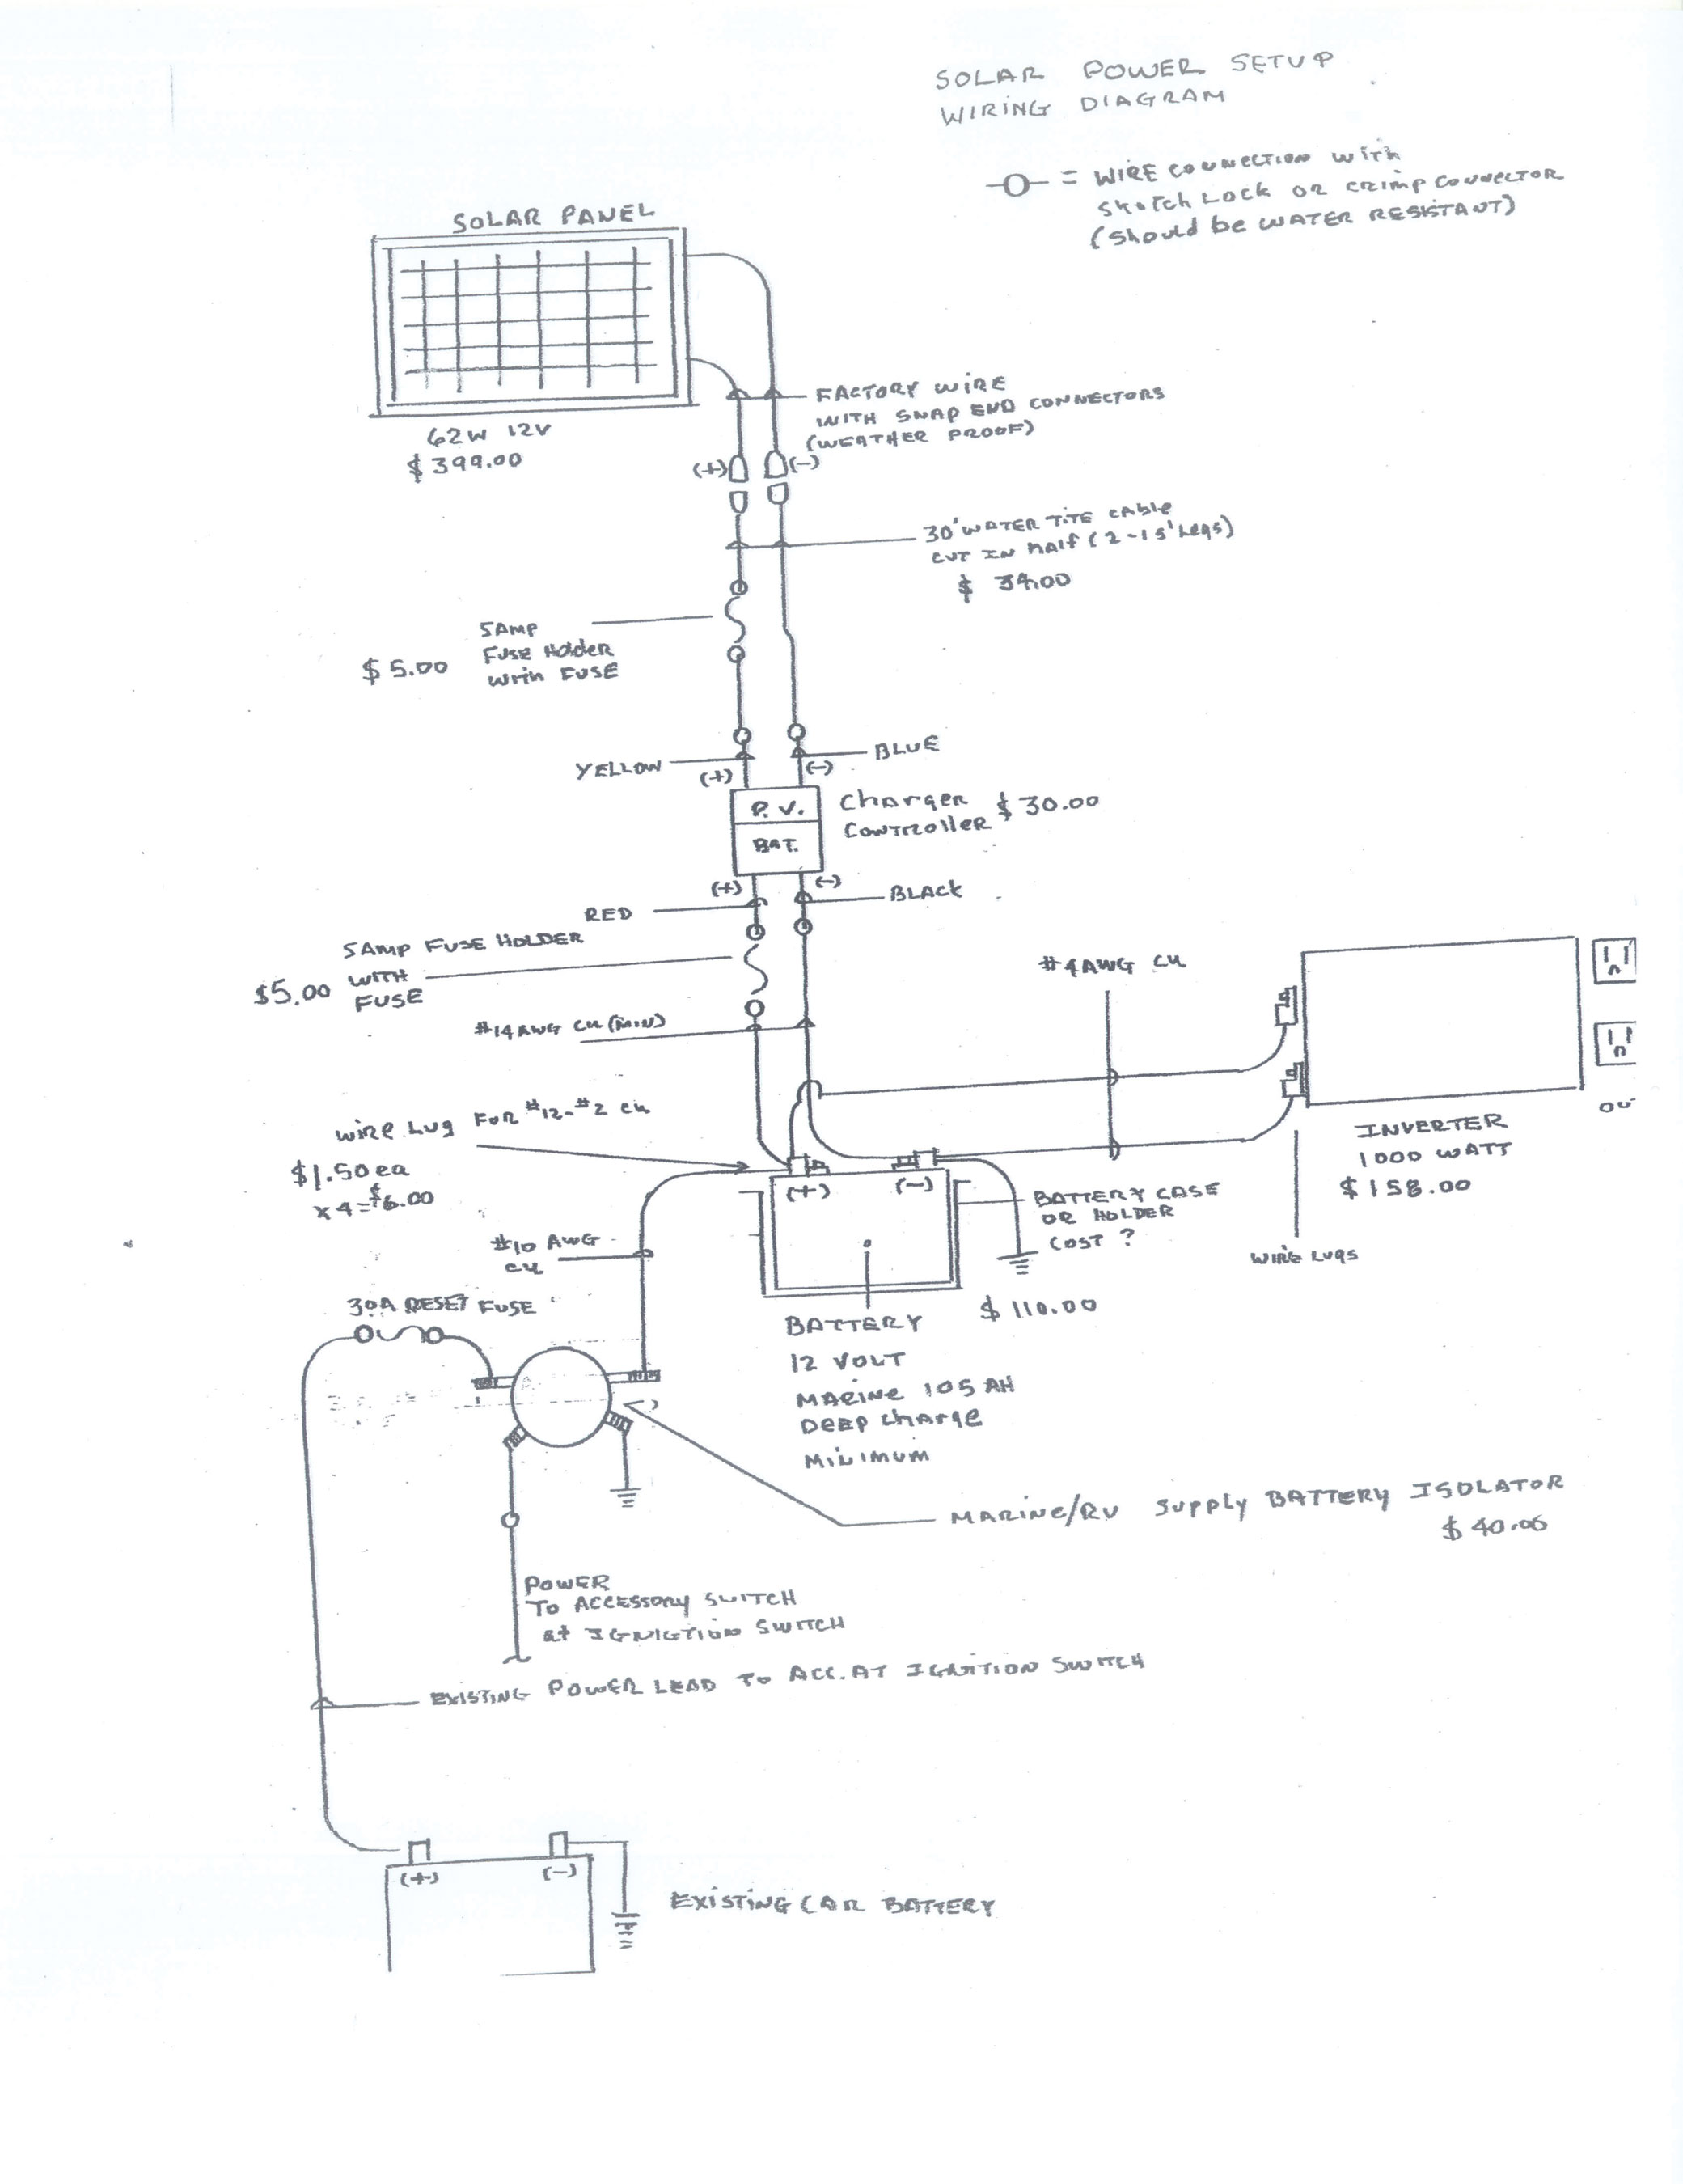 wiring a bedroom wiring a bedroom diagram wiring diagram wiring a bedroom diagram wiring get image about wiring diagram